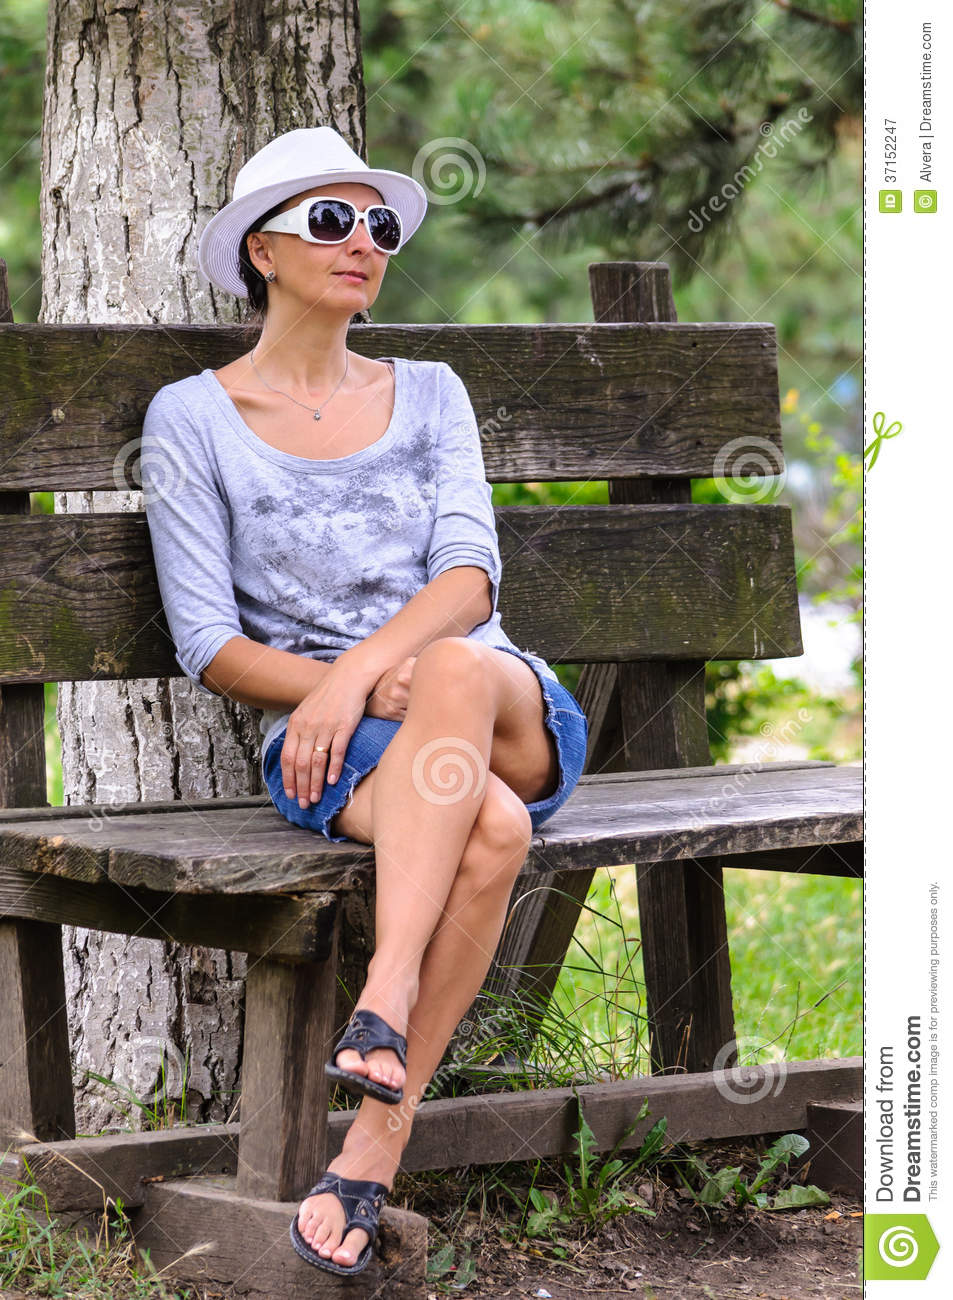 Royalty Free Stock Photography: Blind woman resting in park. Image ...